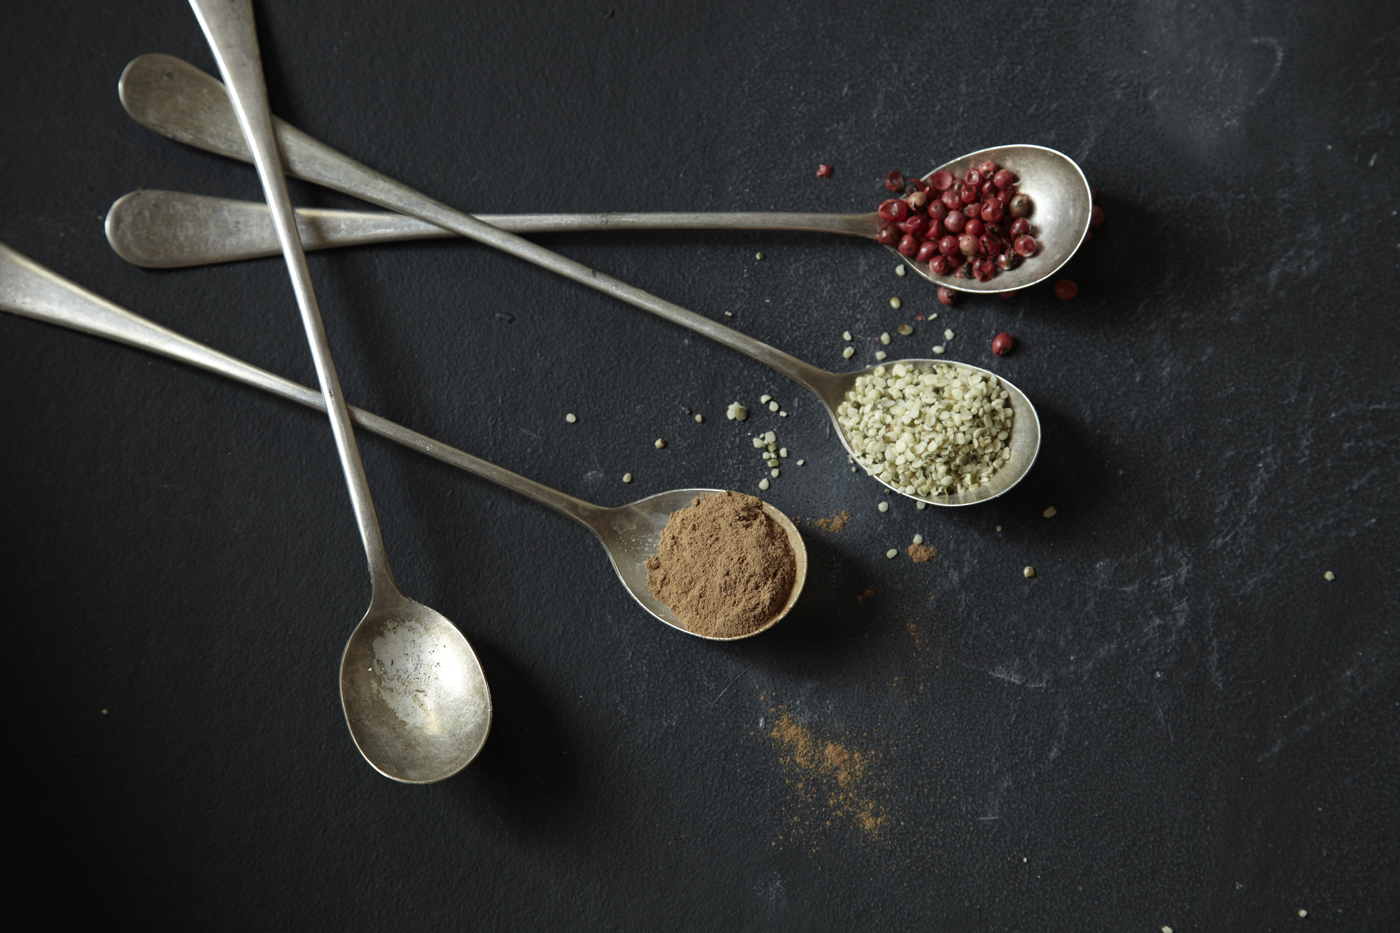 darkconcept_spices+spoons_02_NOT RETOUCHED.jpg